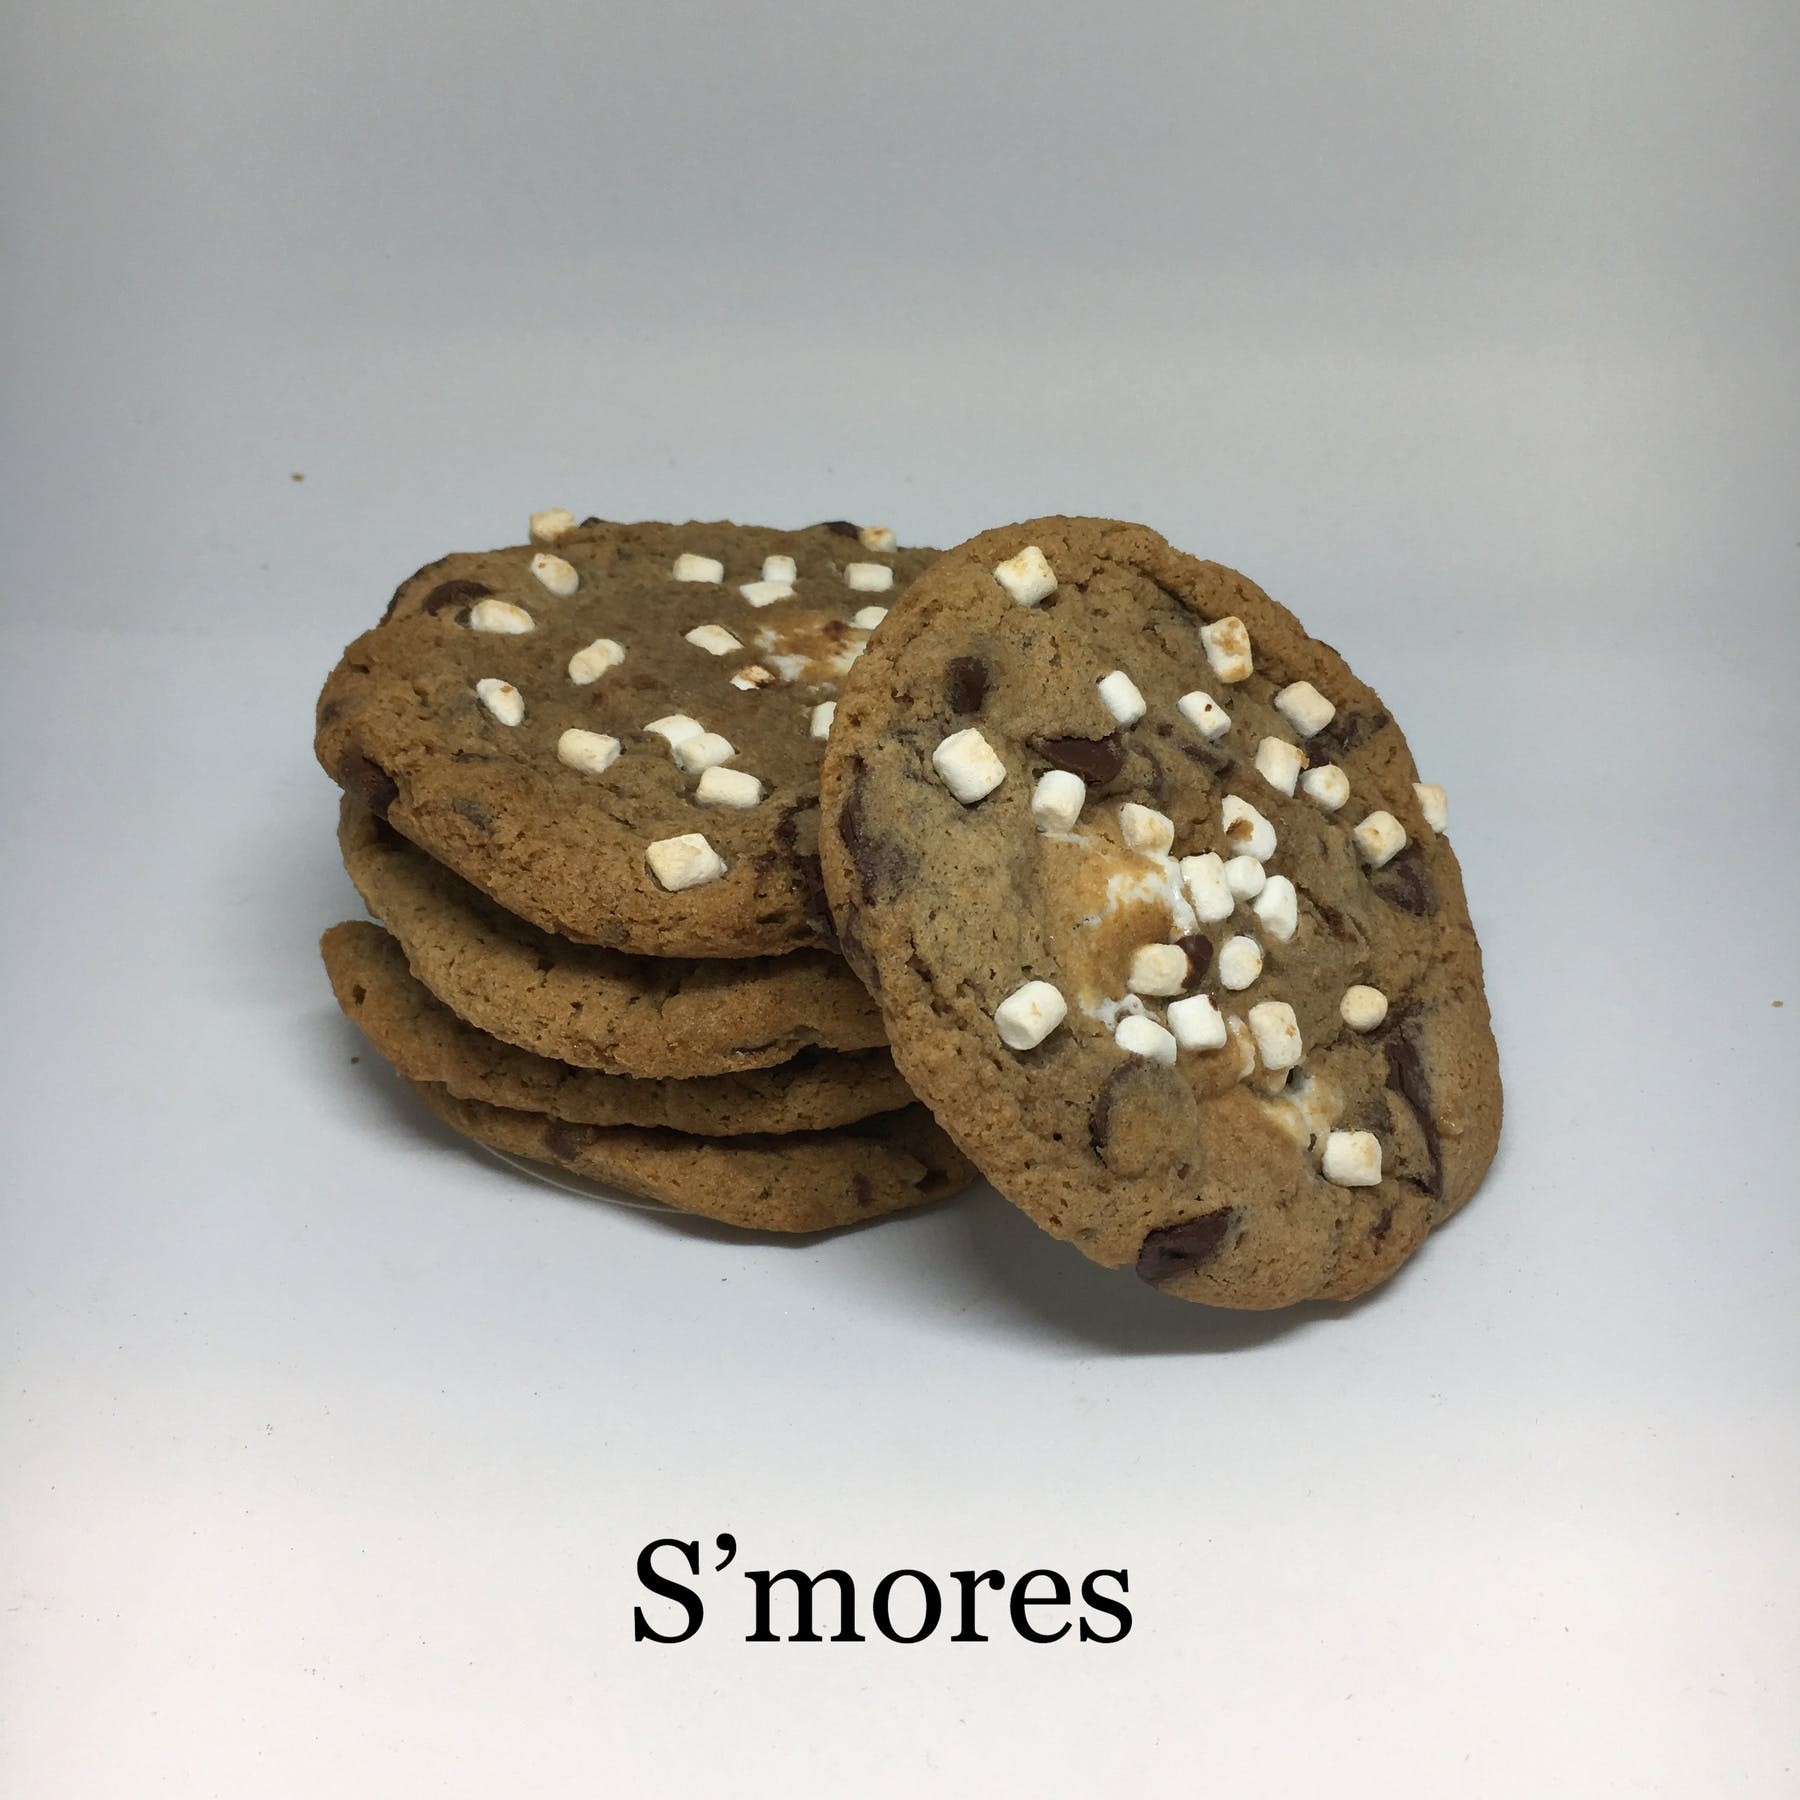 smores flavored cookies